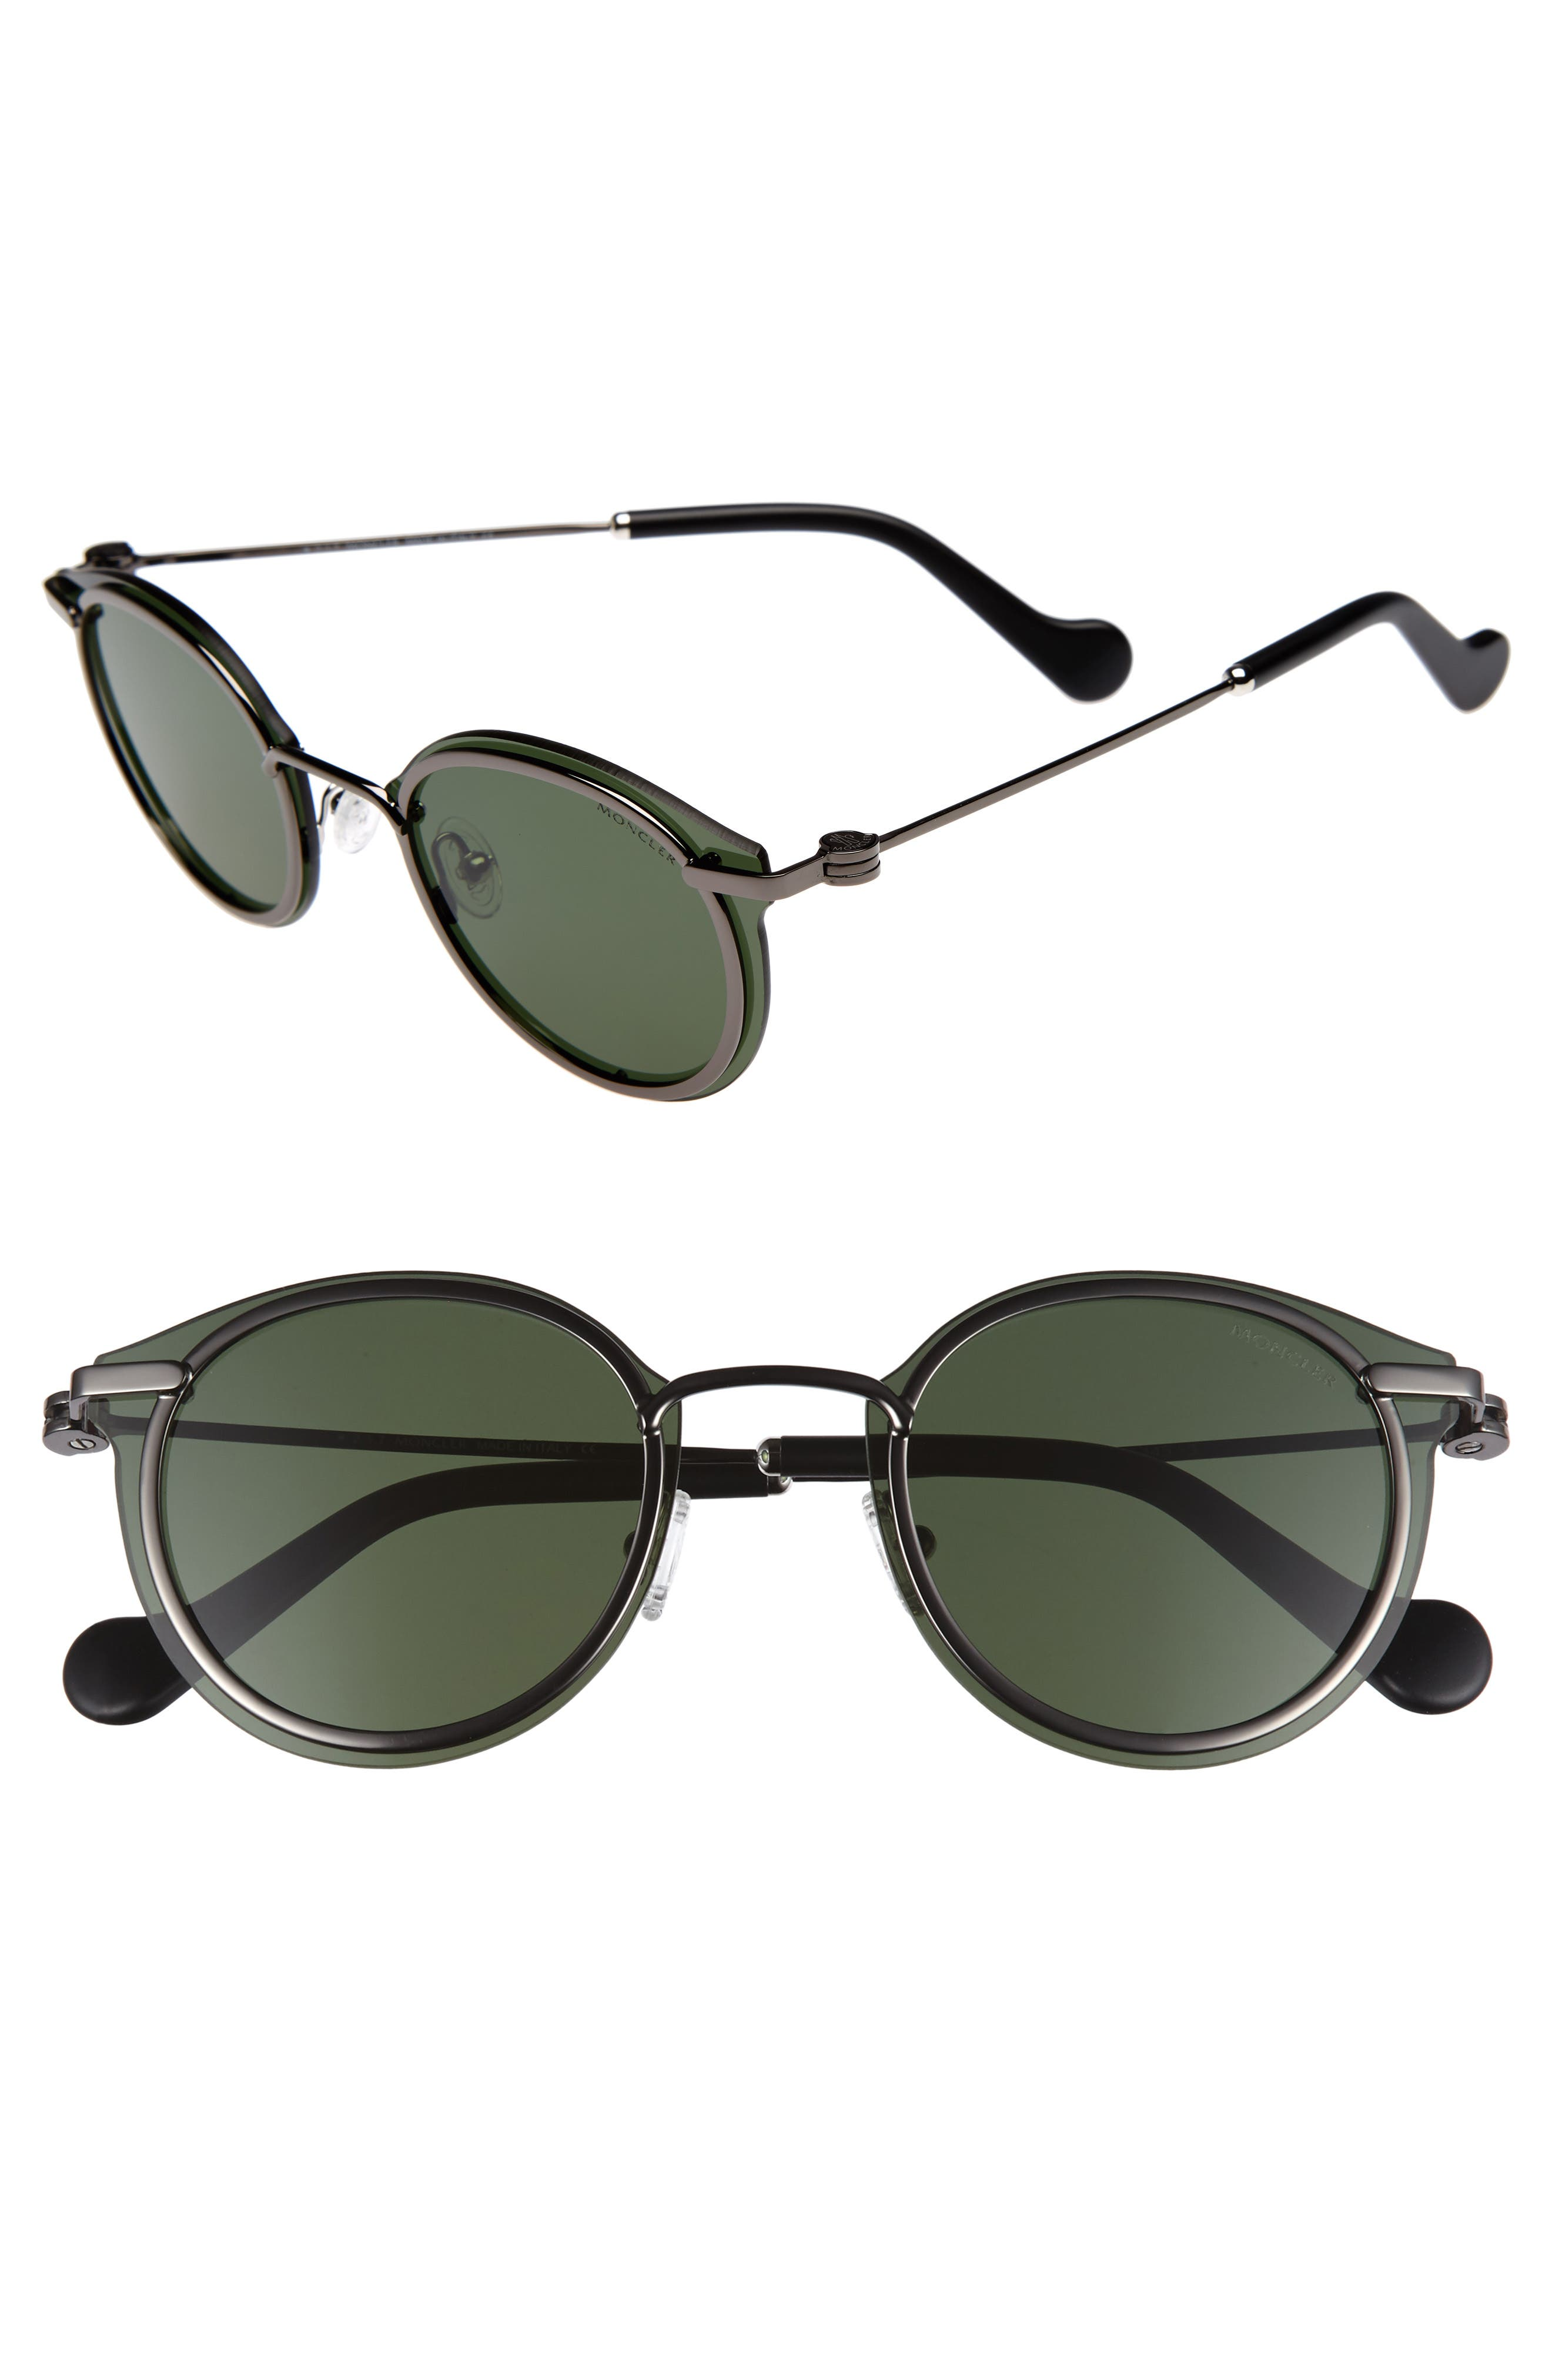 Alternate Image 1 Selected - Moncler 58mm Mirrored Round Sunglasses